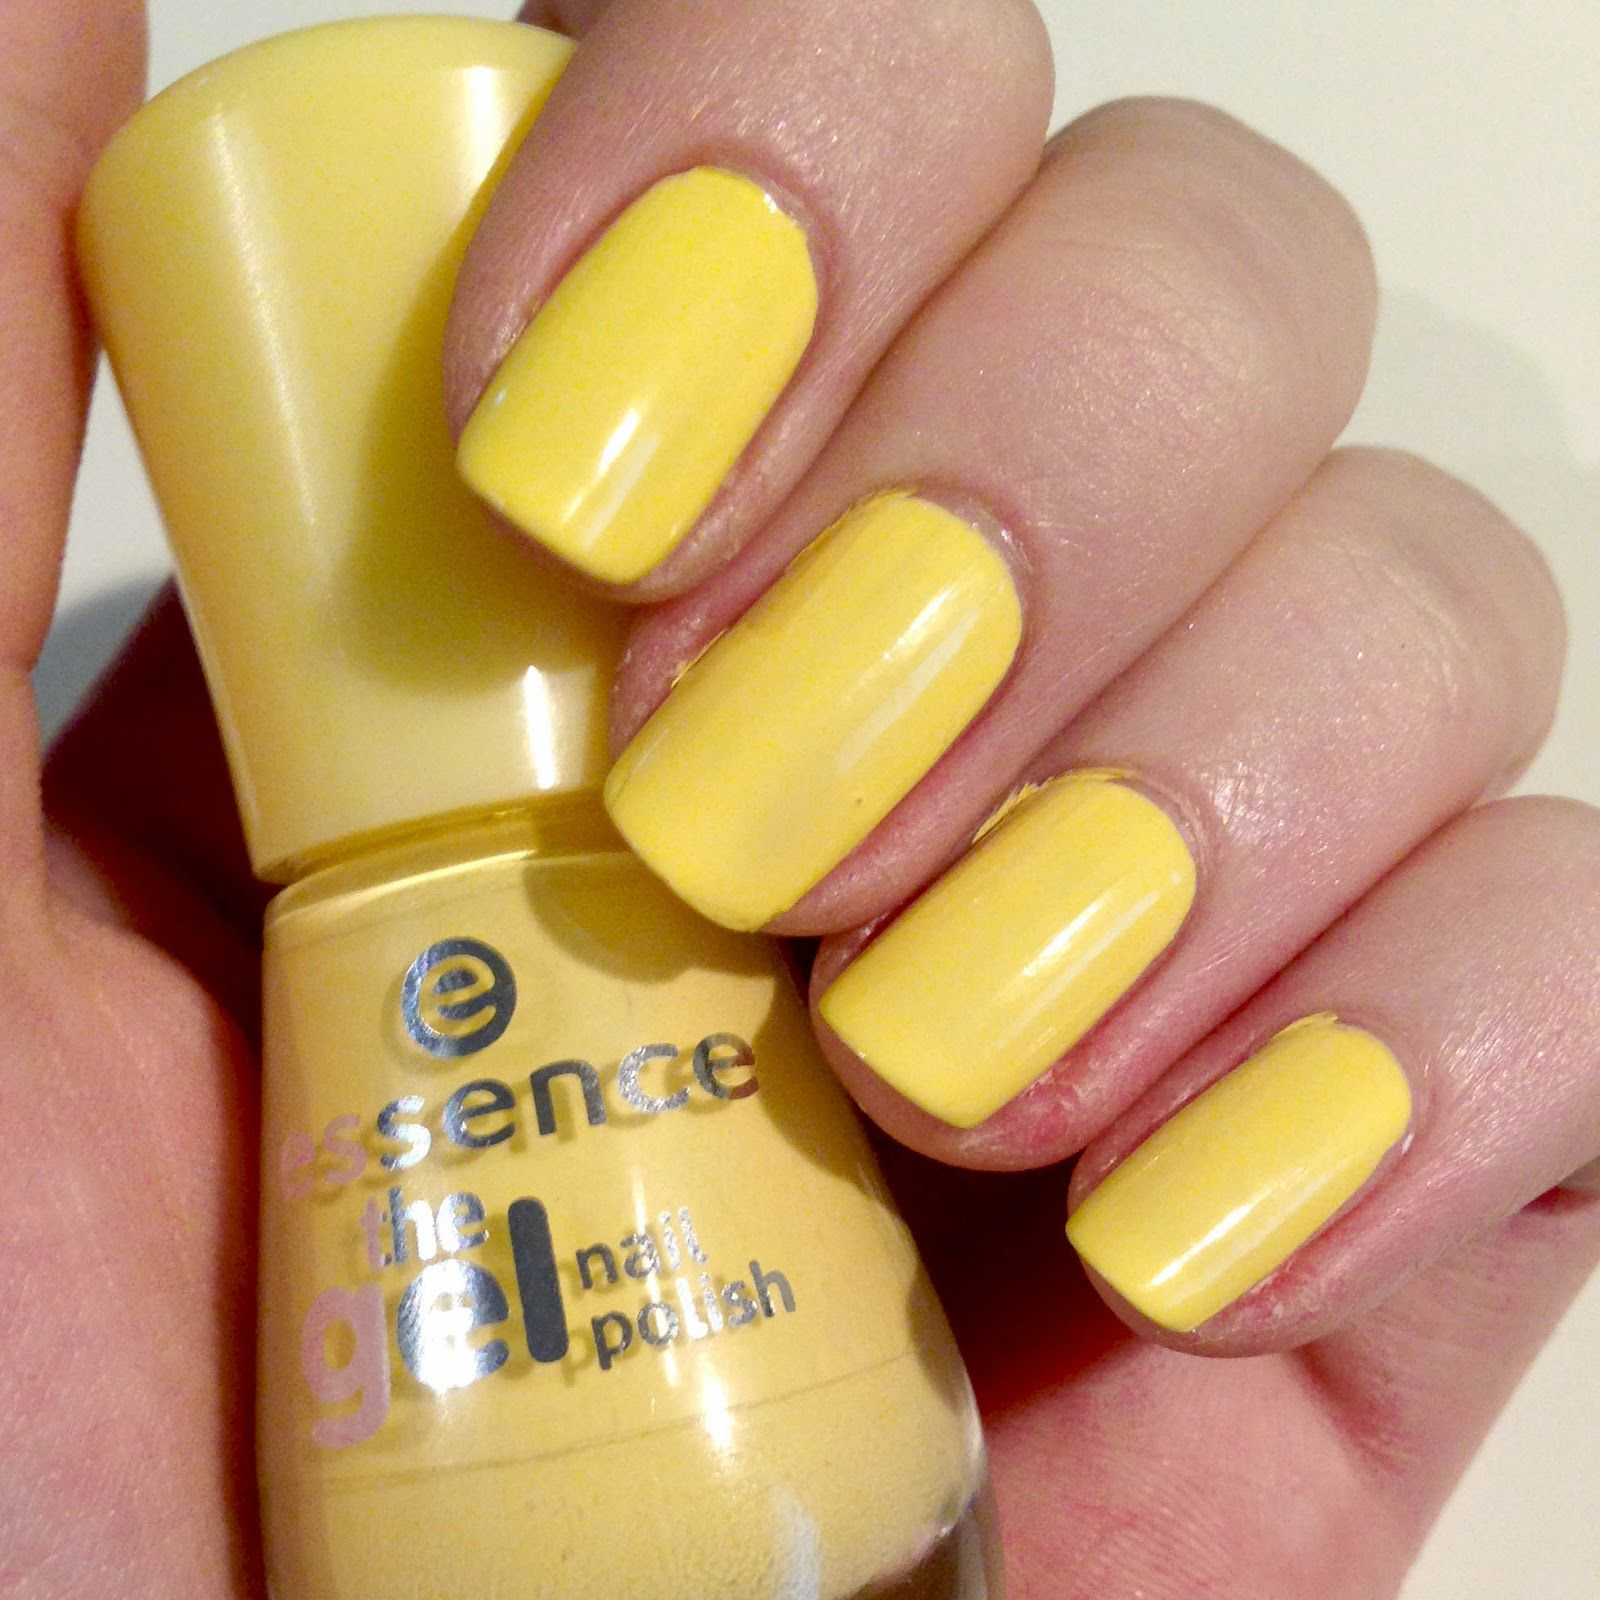 essence the gel nail polish summery light yellow colour | Nails ...